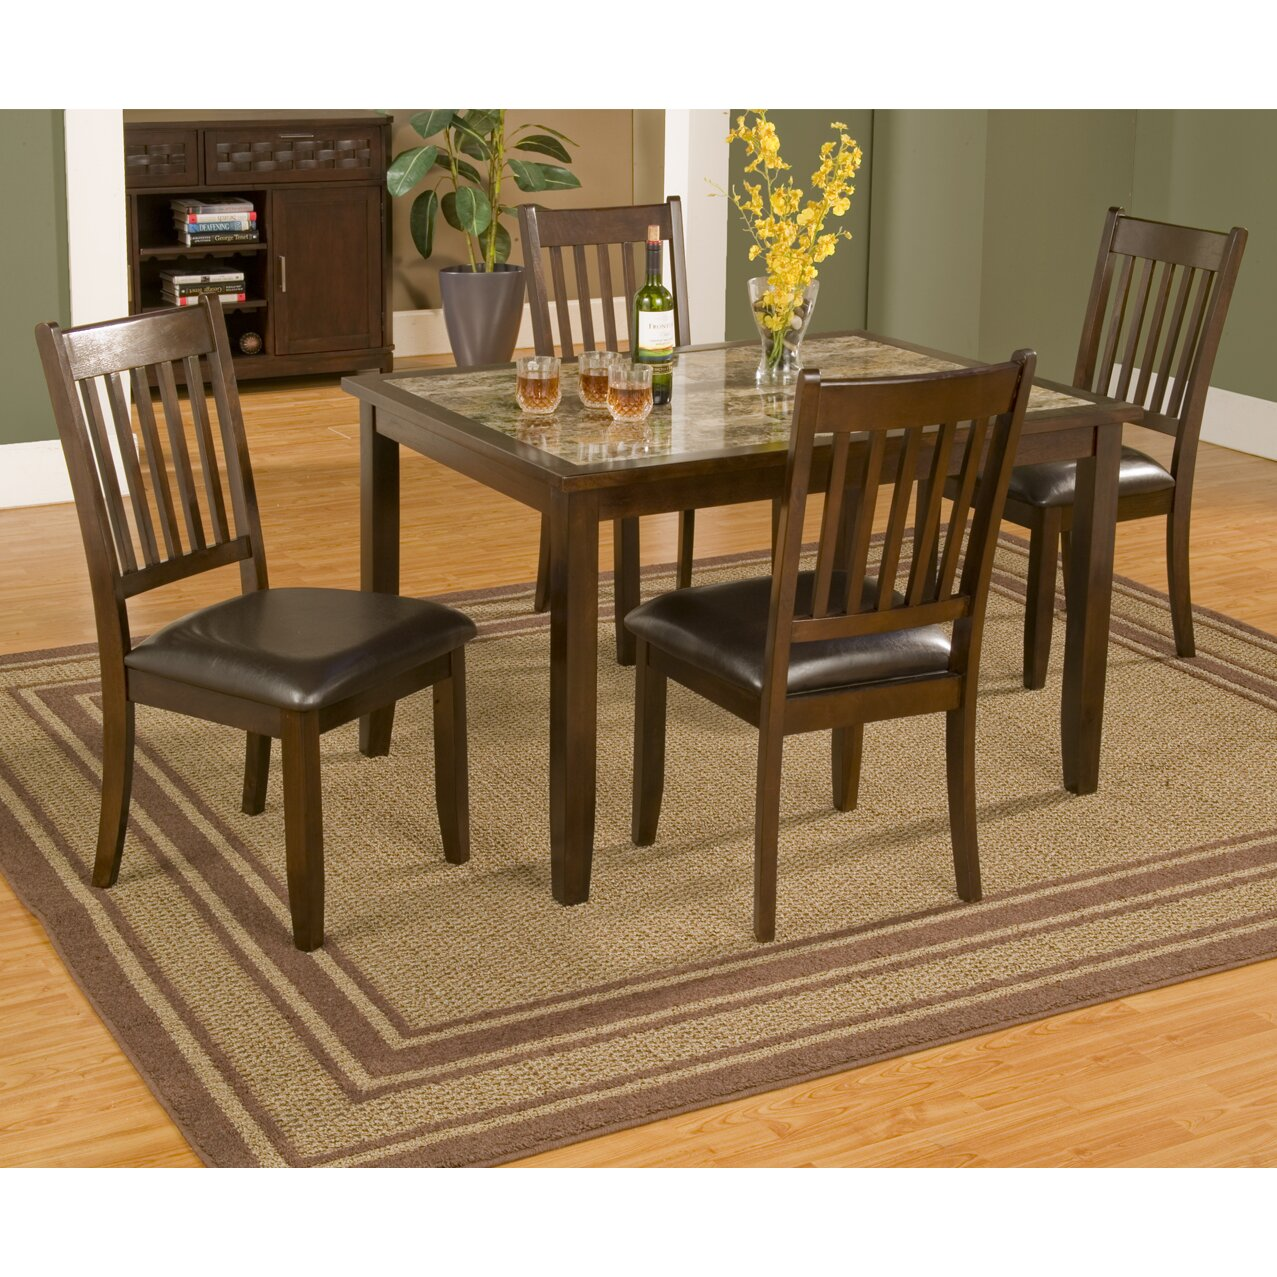 Alpine furniture capitola piece dining set reviews